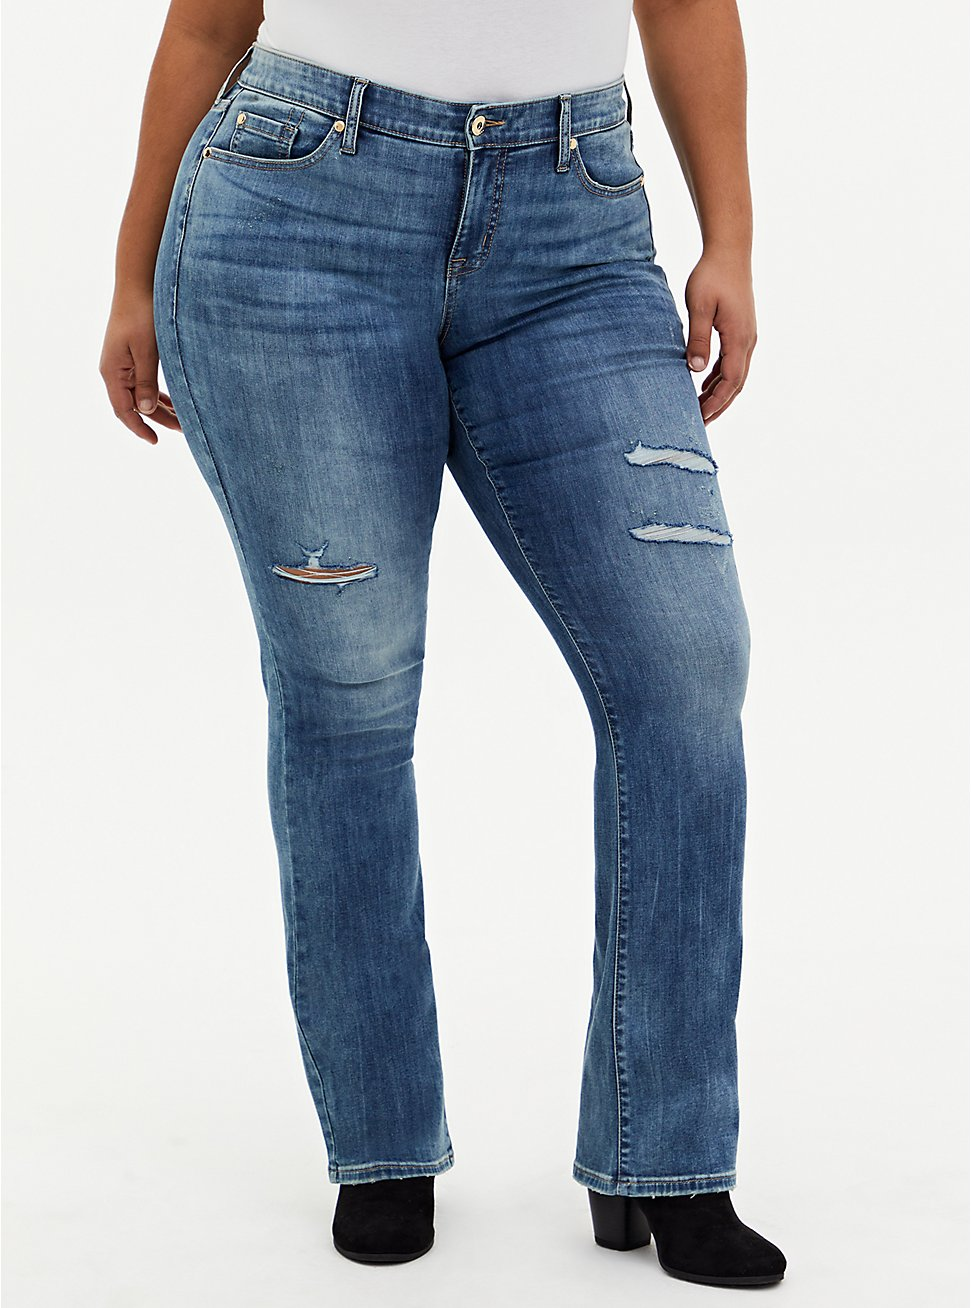 Mid Rise Slim Boot Jean - Super Soft Medium Wash, OCEAN FRONT, hi-res